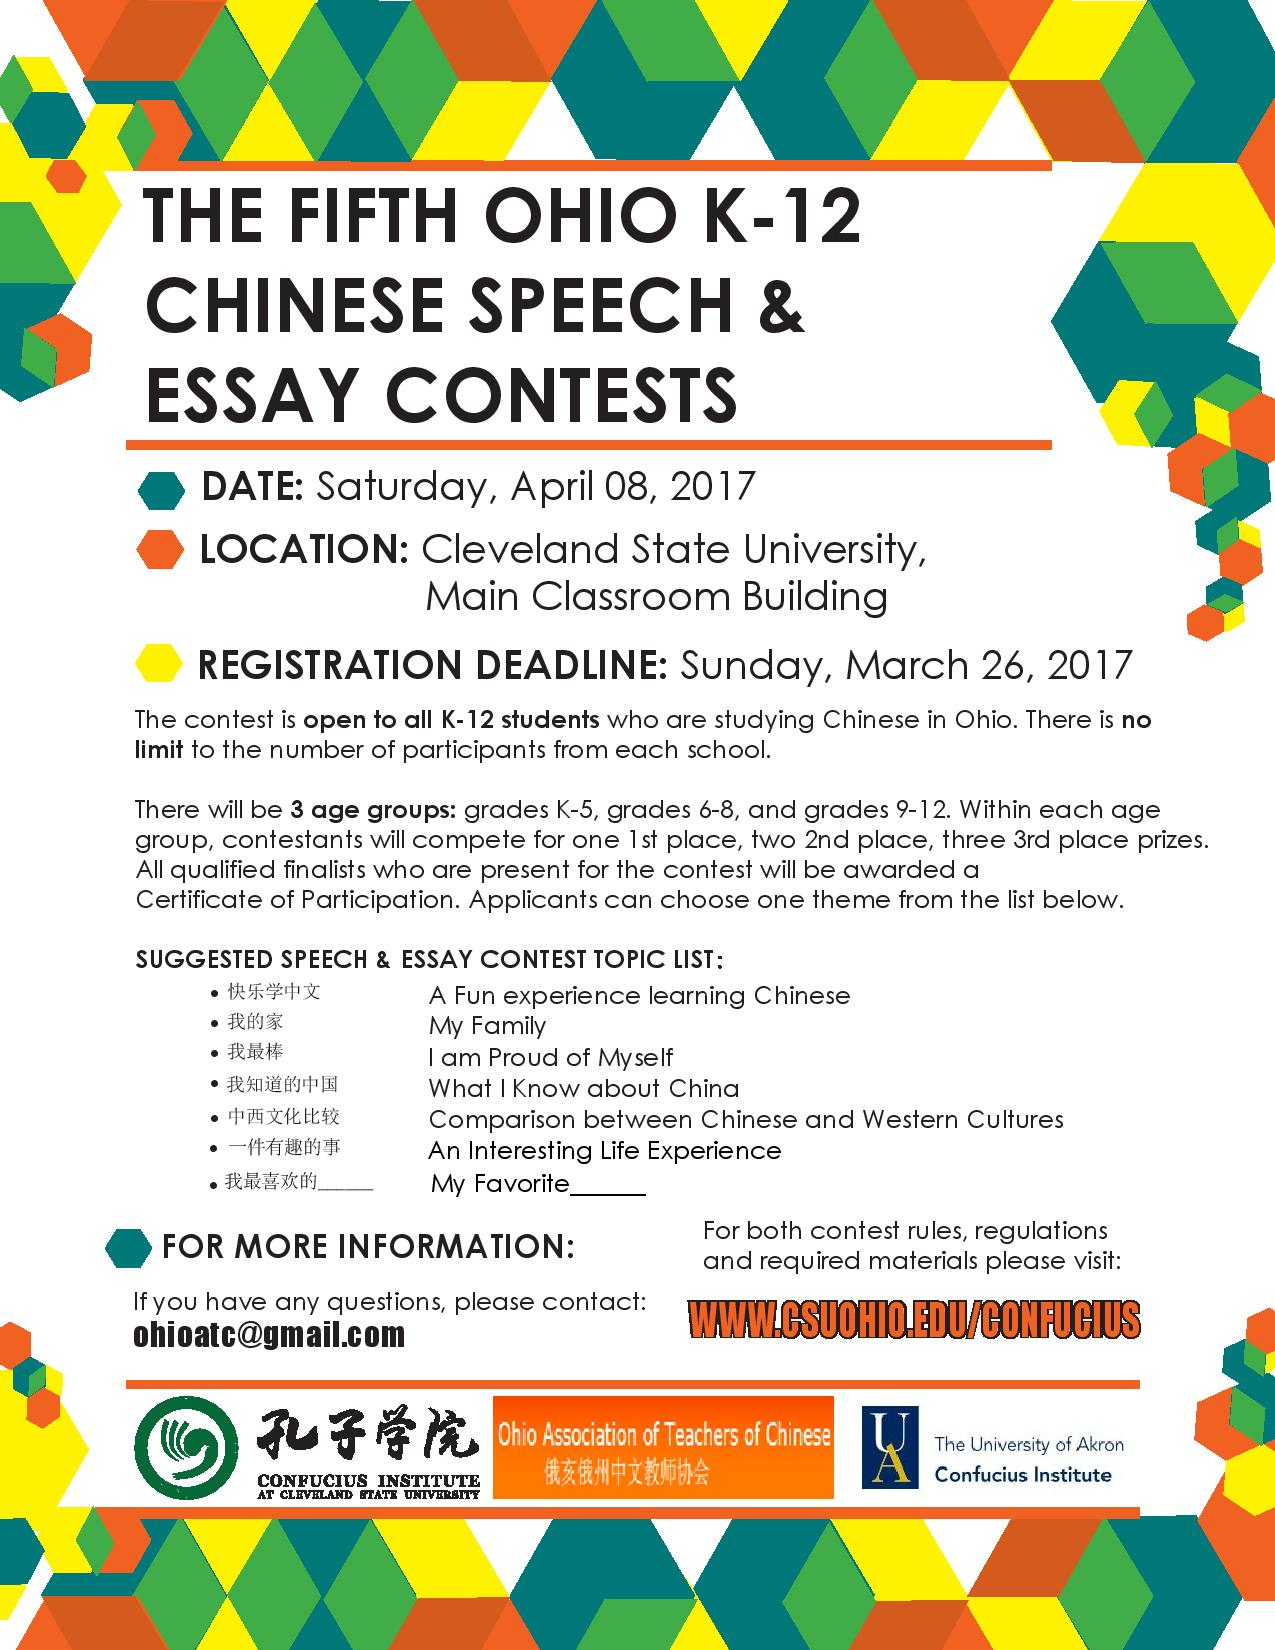 009 Essay Example Contest Confucius The Ohio K Chinese Speech Contests College Wr Writing For High School Students Student Staggering 2017 Online Competition India Optimist International Full